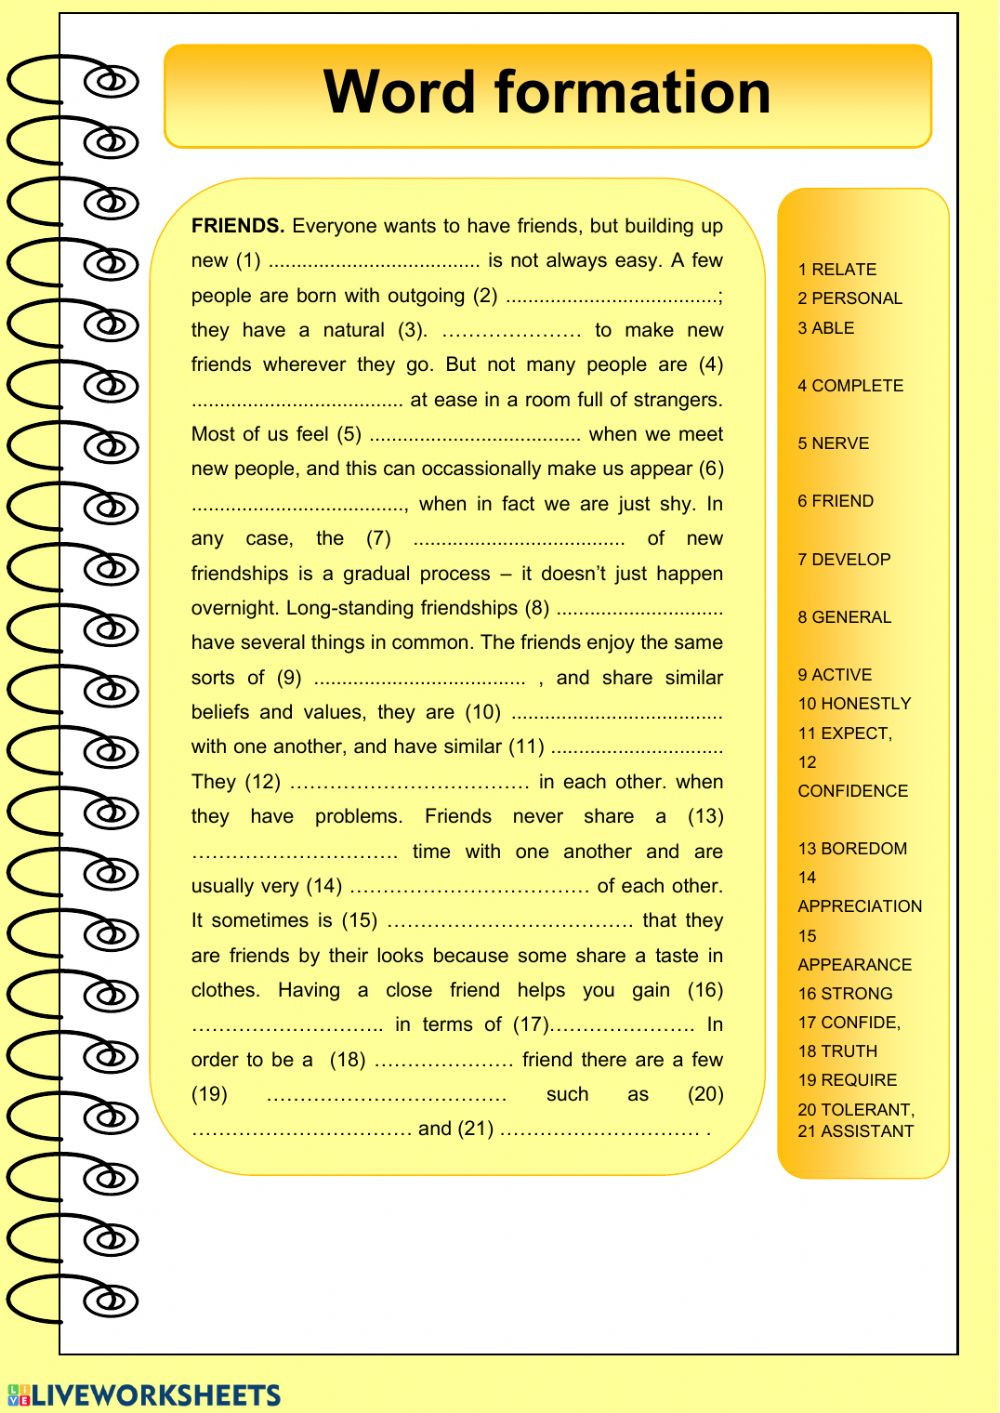 medium resolution of Word formation free worksheet